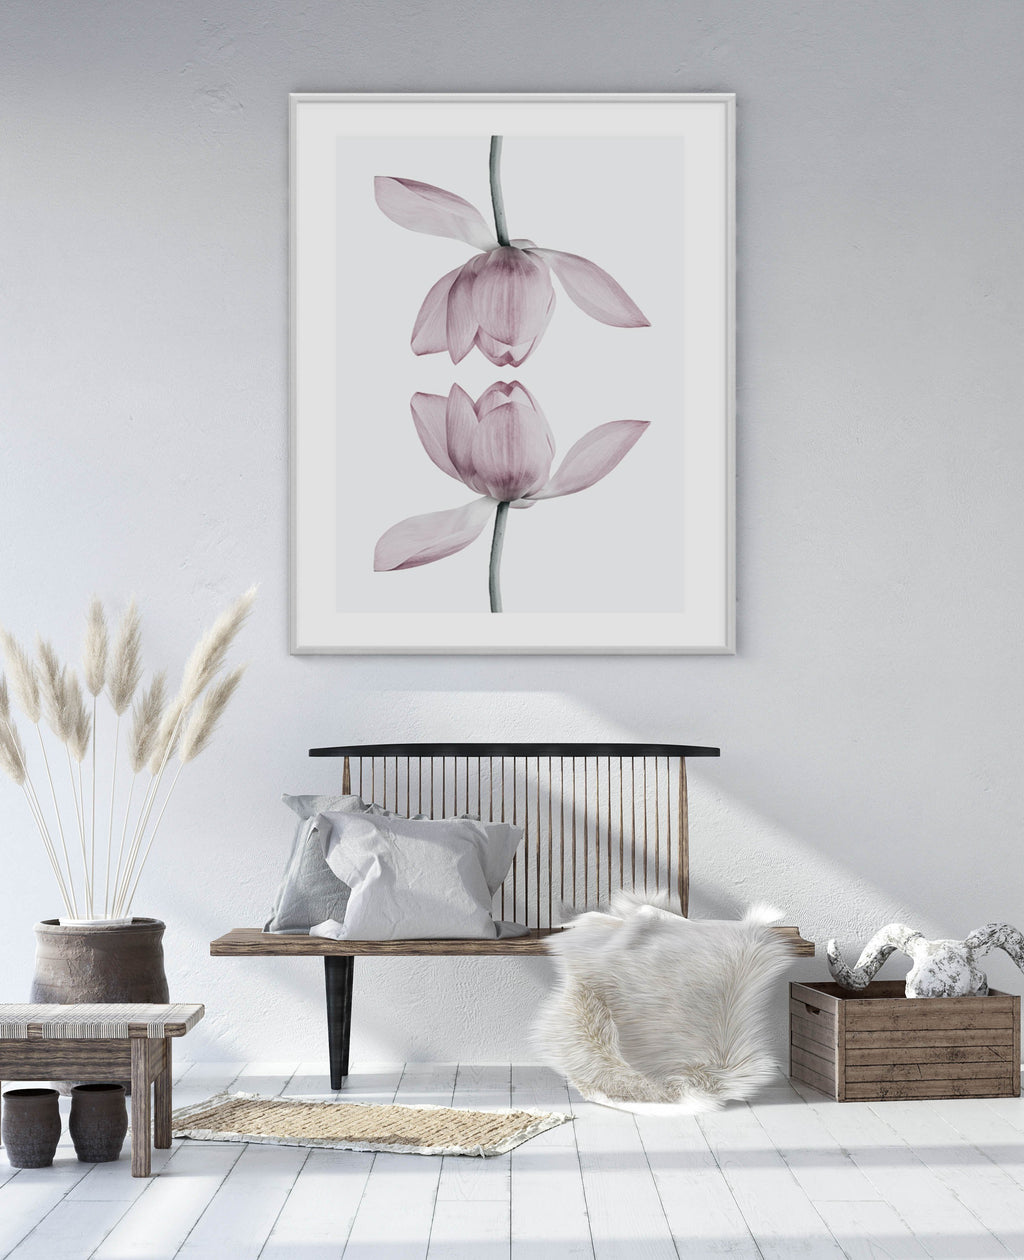 Lotus In Reflection - Olive et Oriel | Shop Art Prints & Posters Online